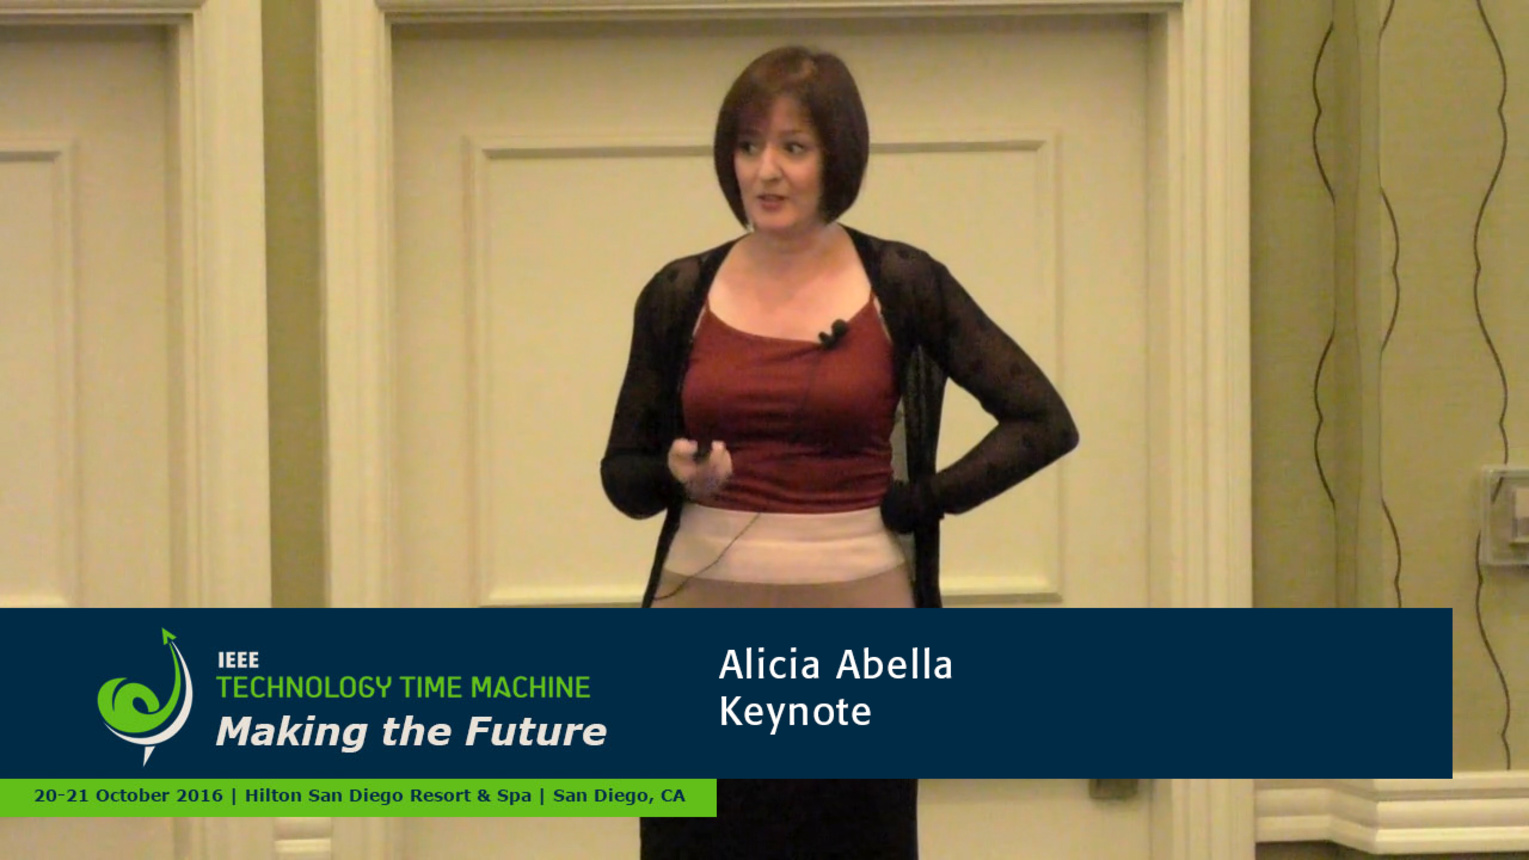 Keynote - AT&T's Alicia Abella: 2016 Technology Time Machine